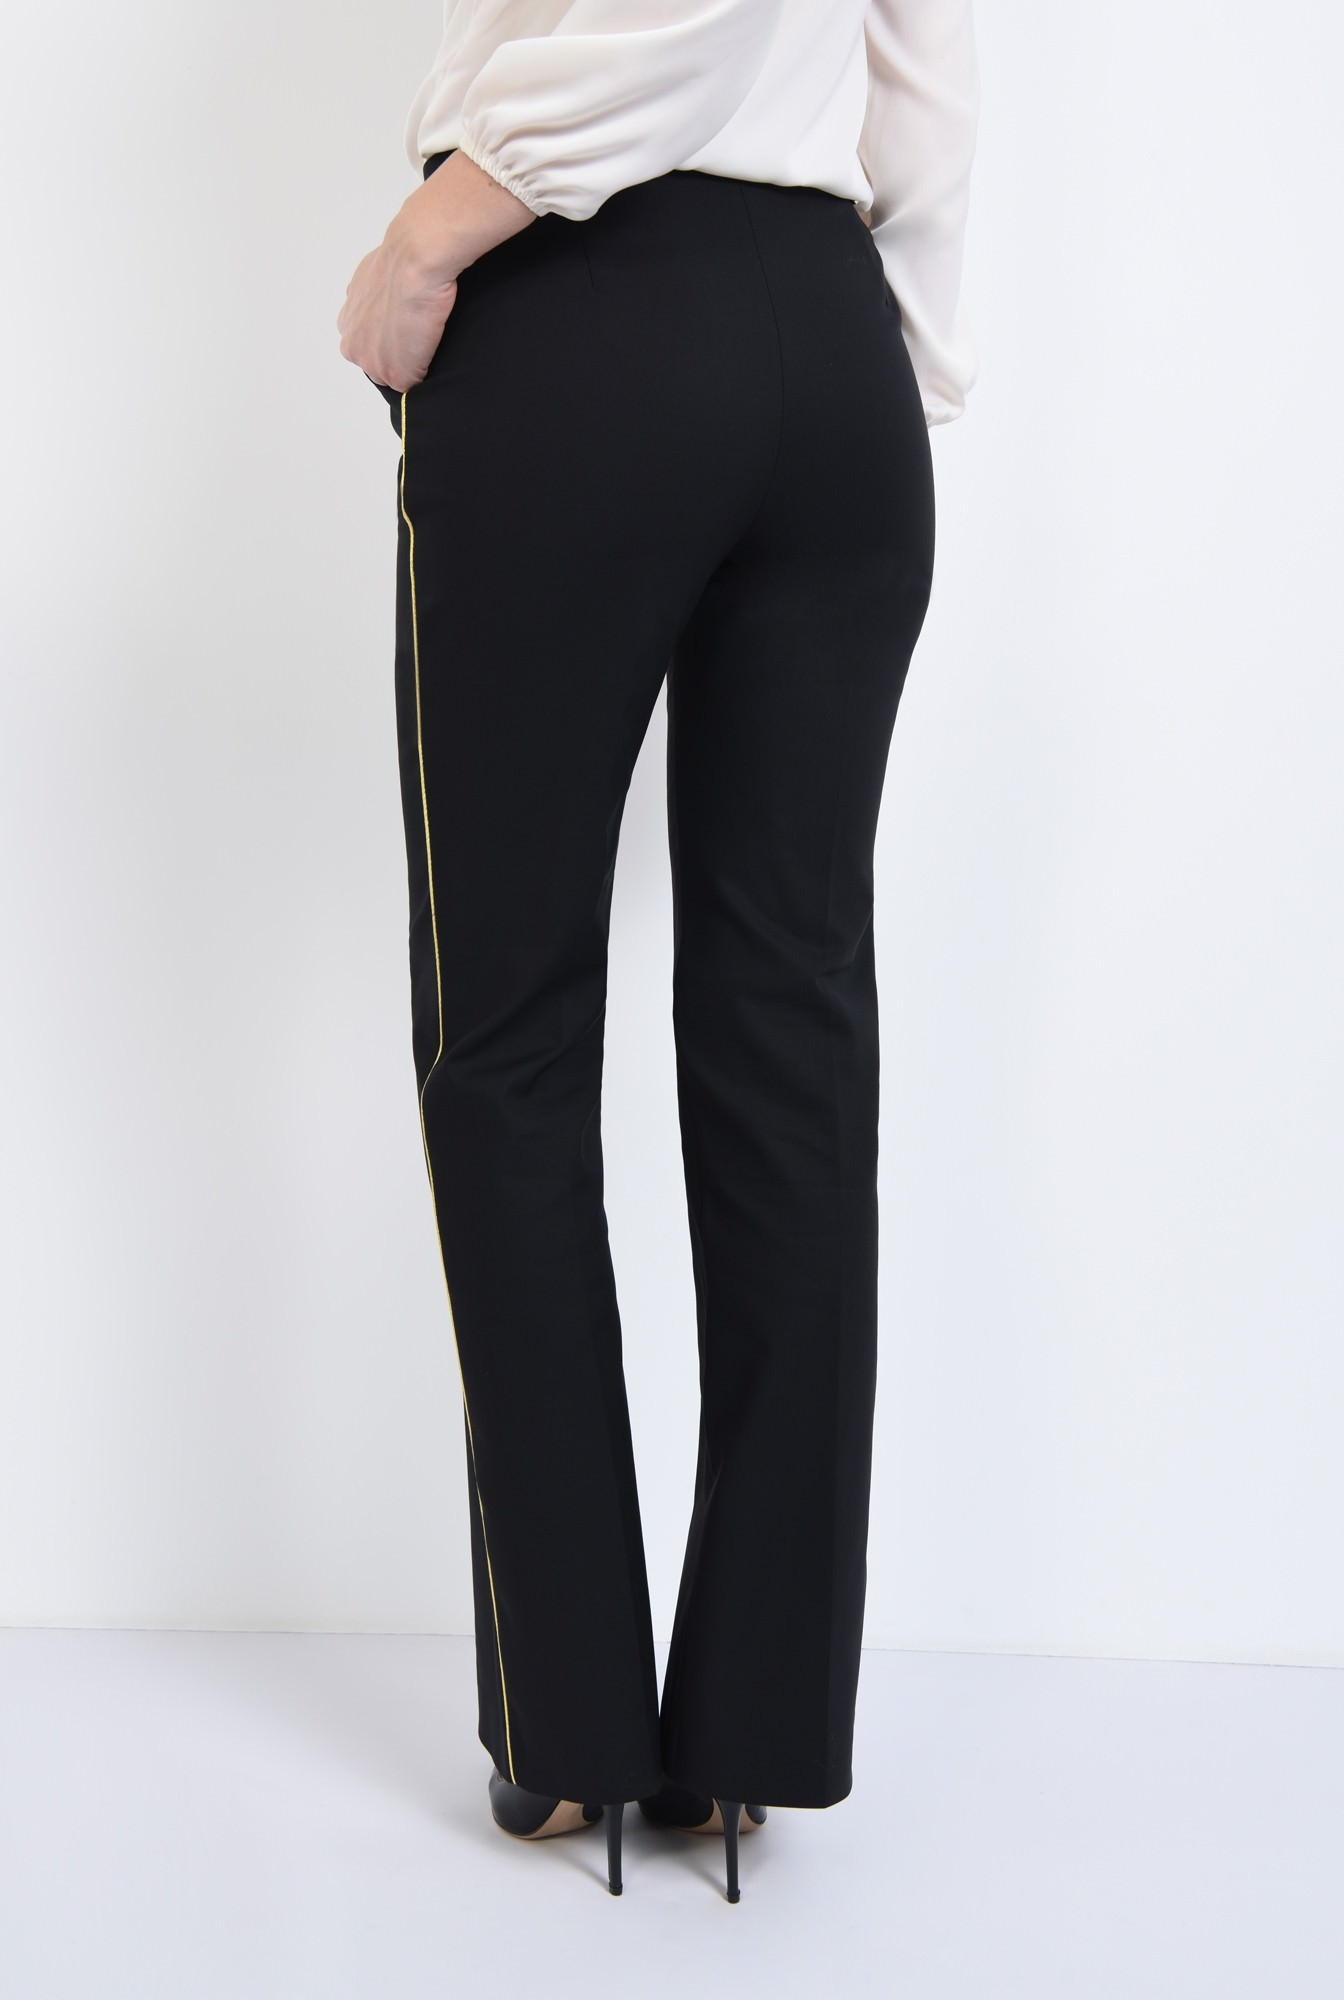 1 - PANTALON OFFICE PT 192-NEGRU